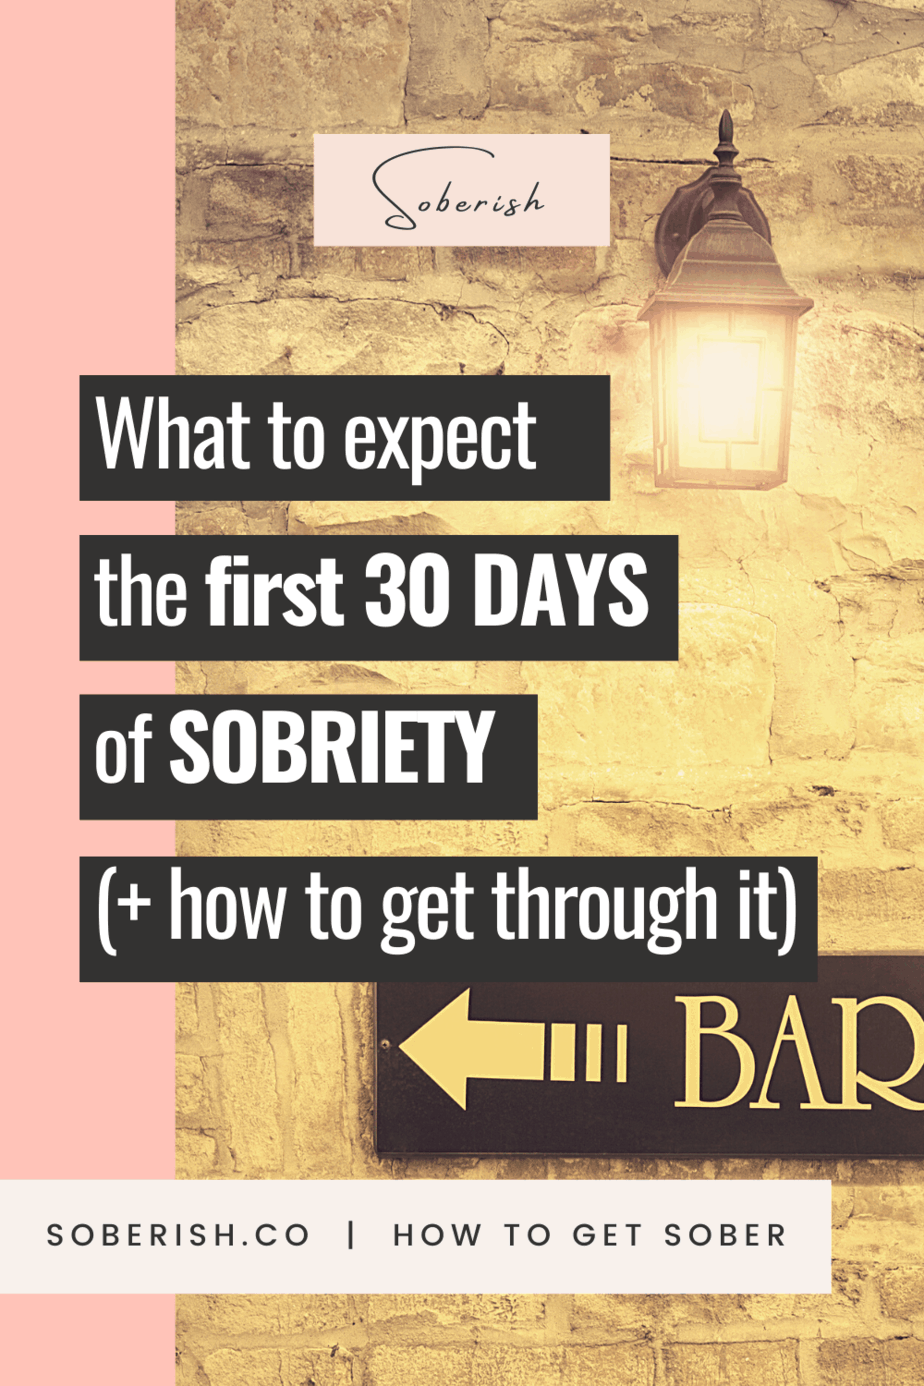 Bar wall with title what to expect the first 30 days of sobriety